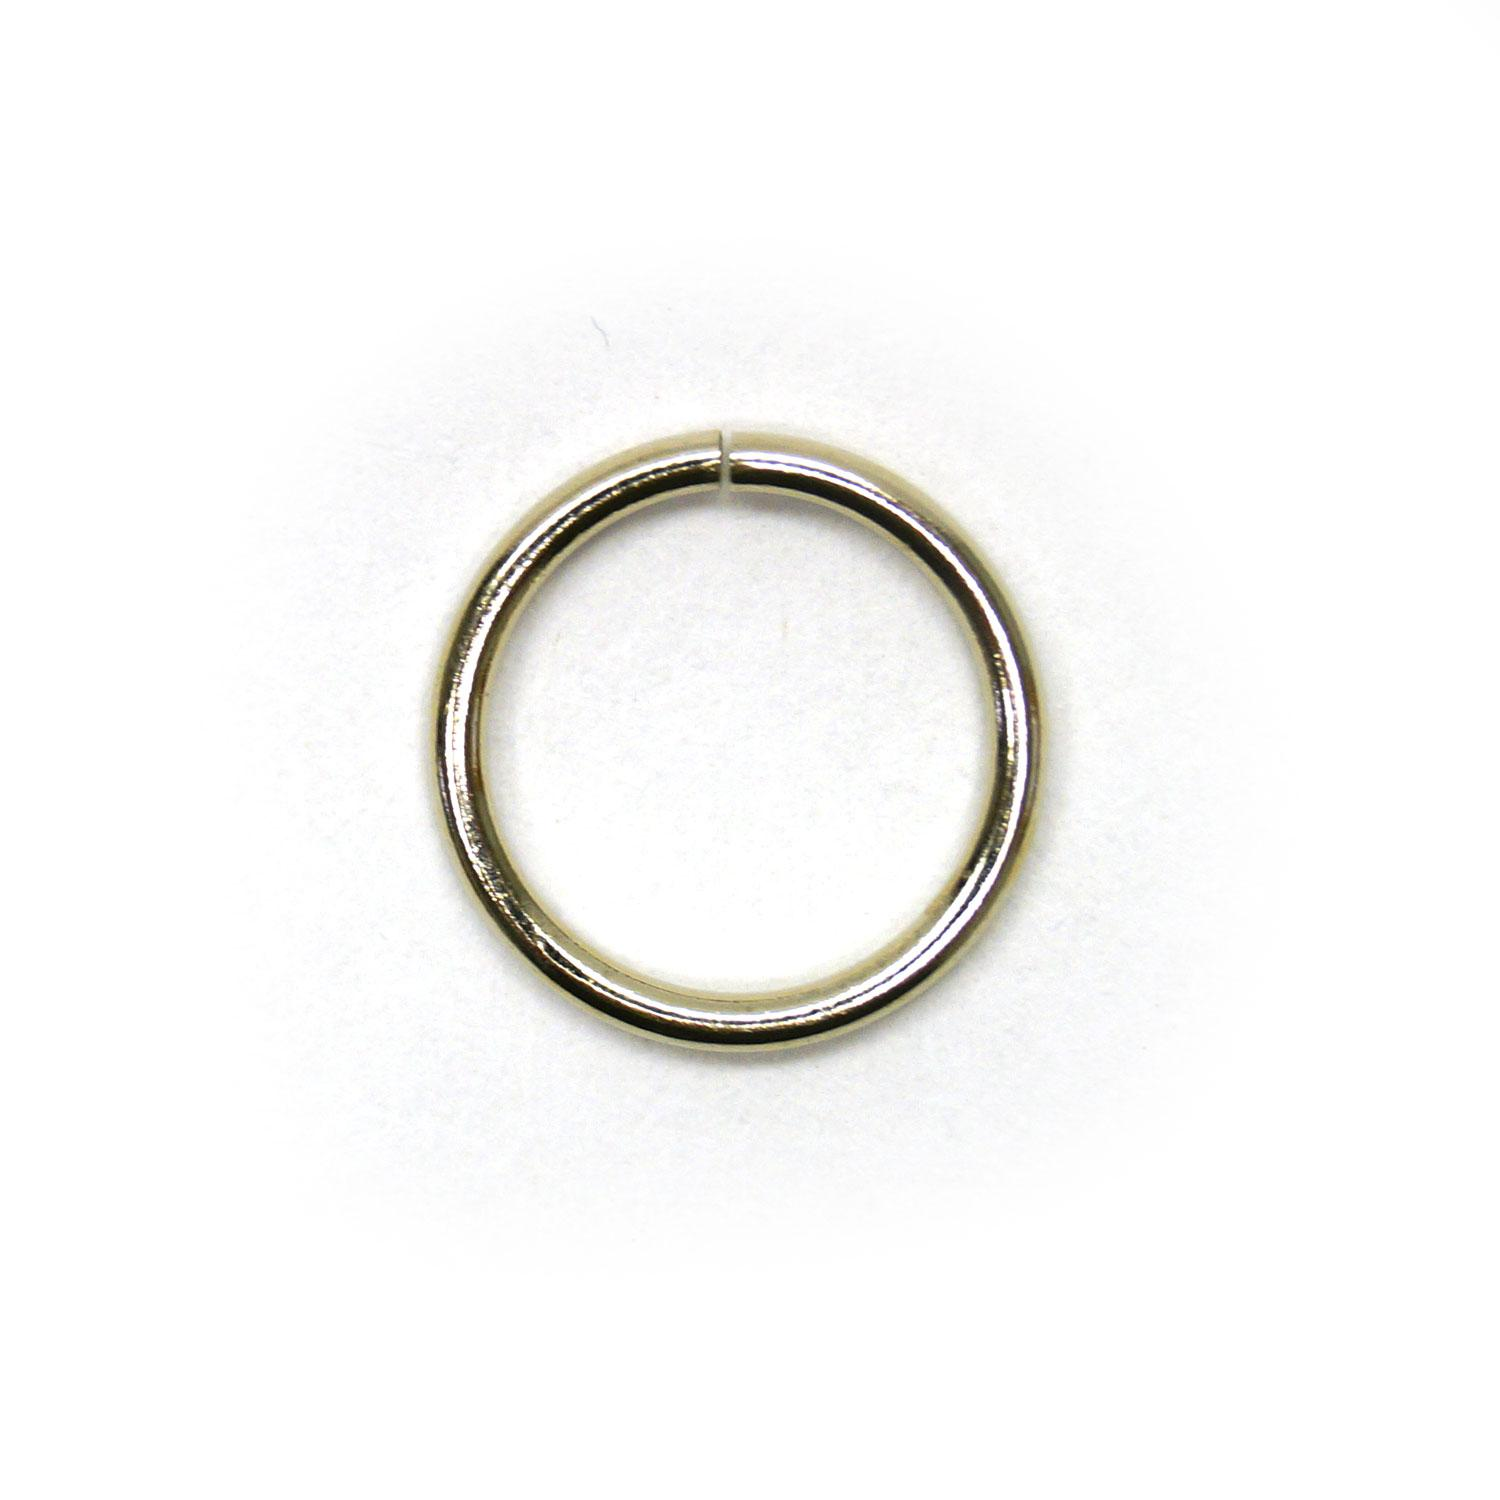 3/8 Nickel Jump Rings - 50 Pieces